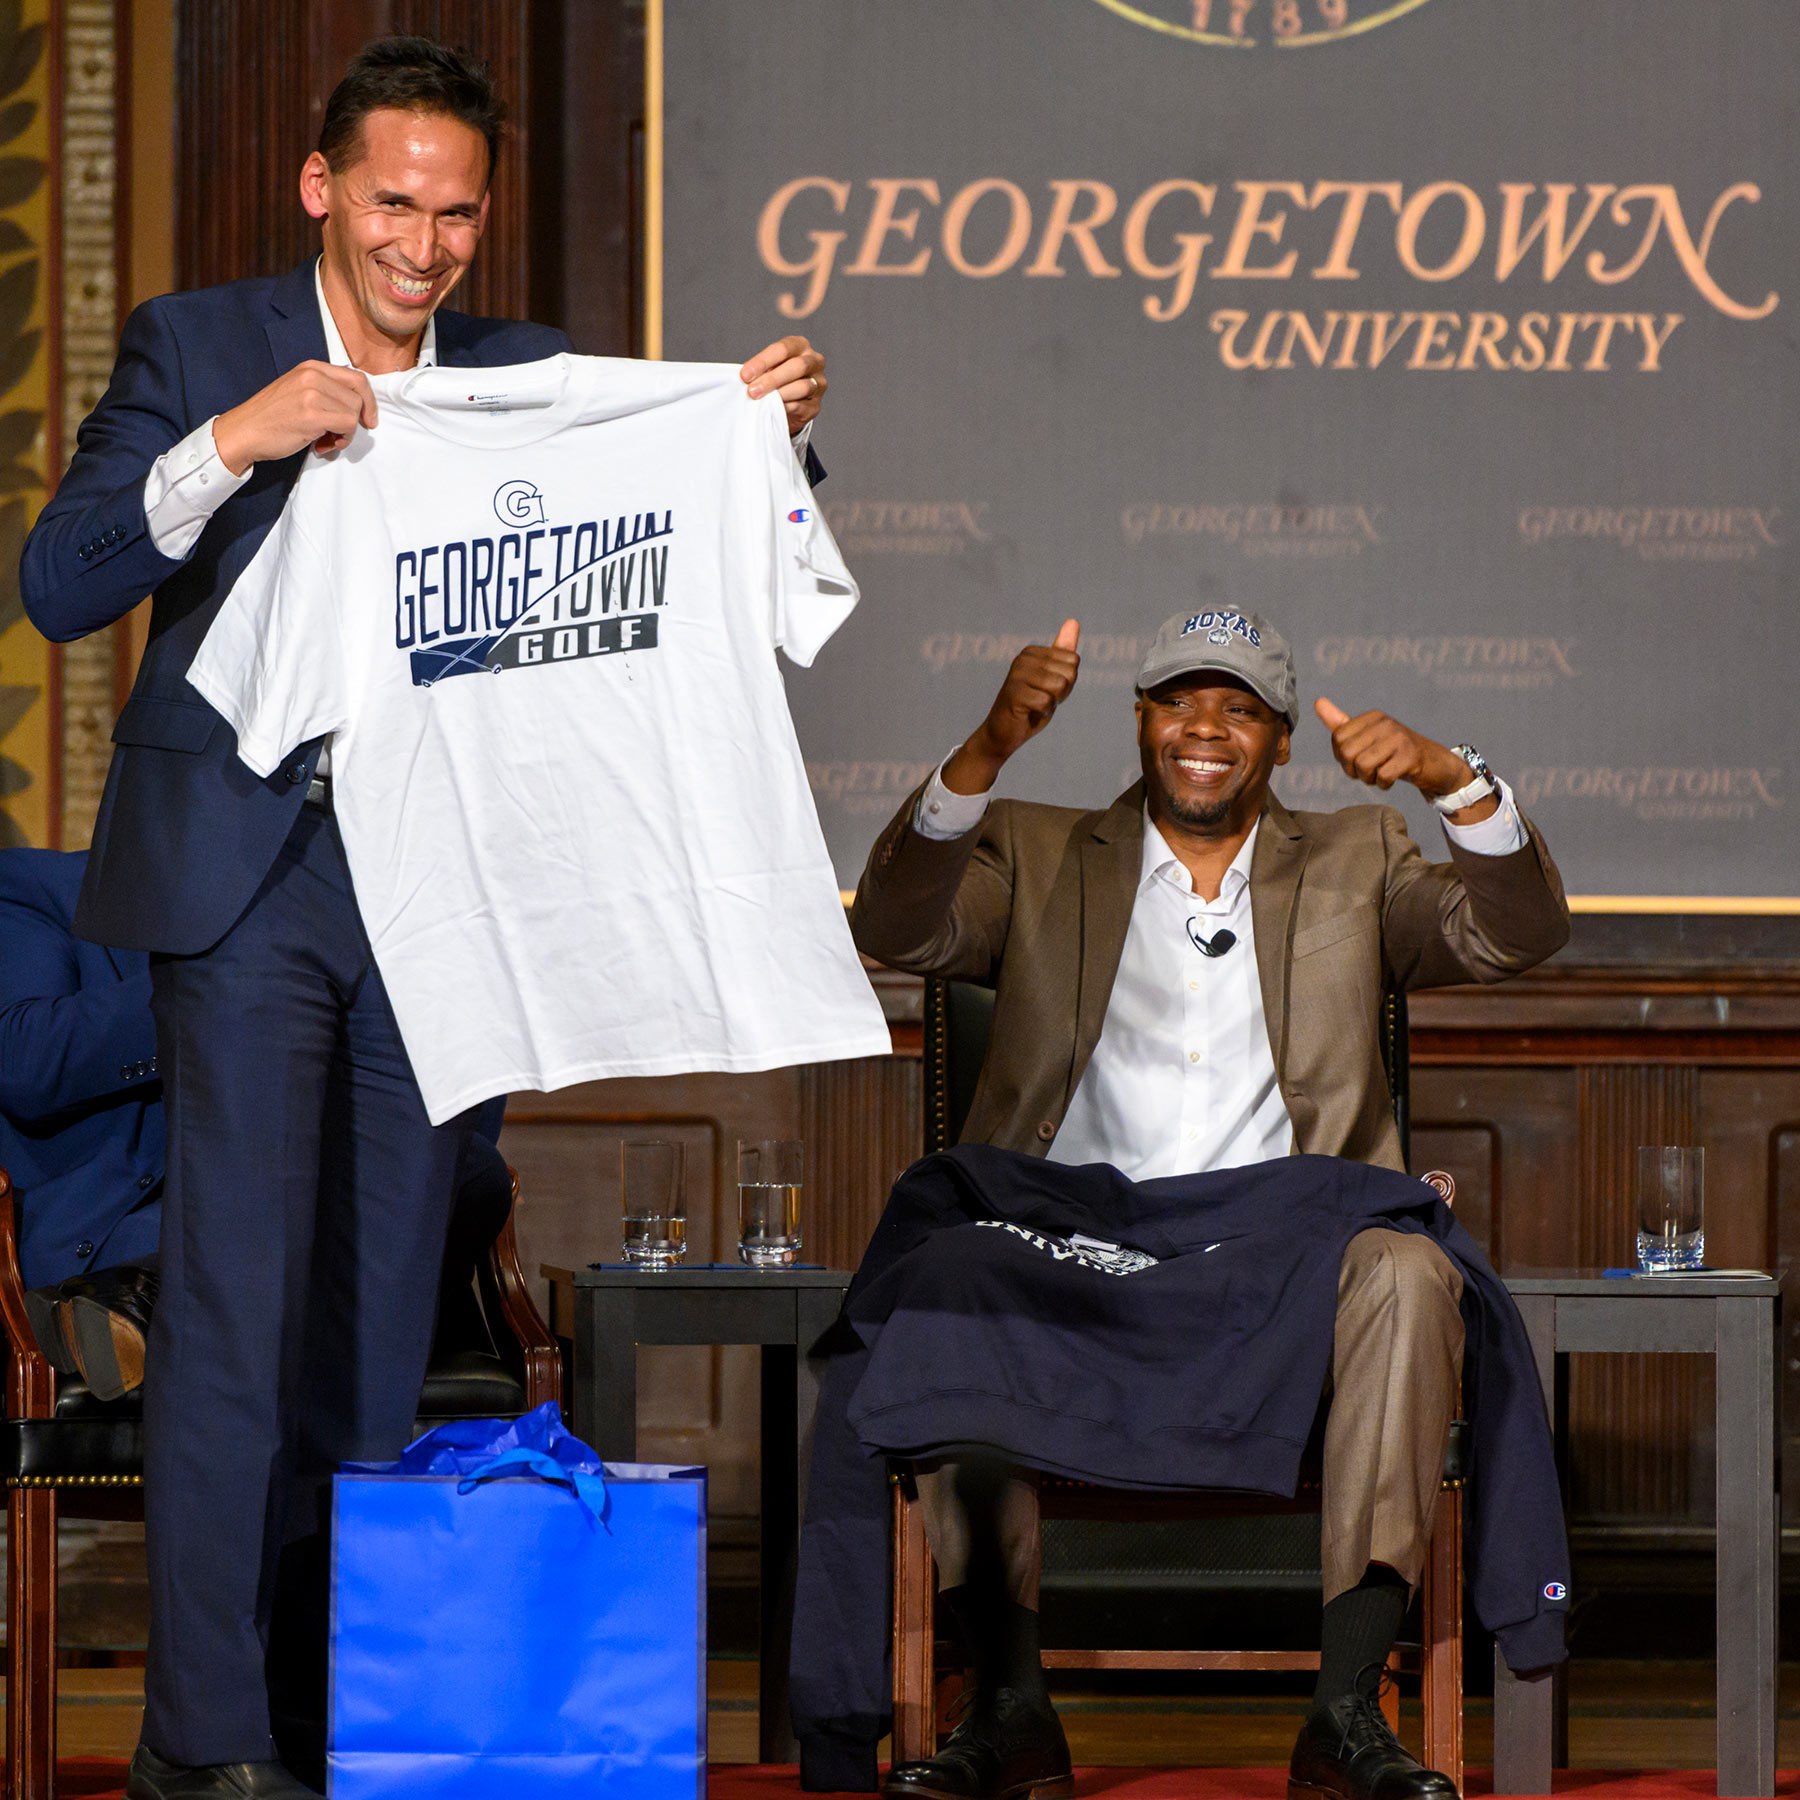 Professor Marc Howard stands on stage in Gaston Hall, presenting a Georgetown University golf t-shirt to Valentino Dixon.